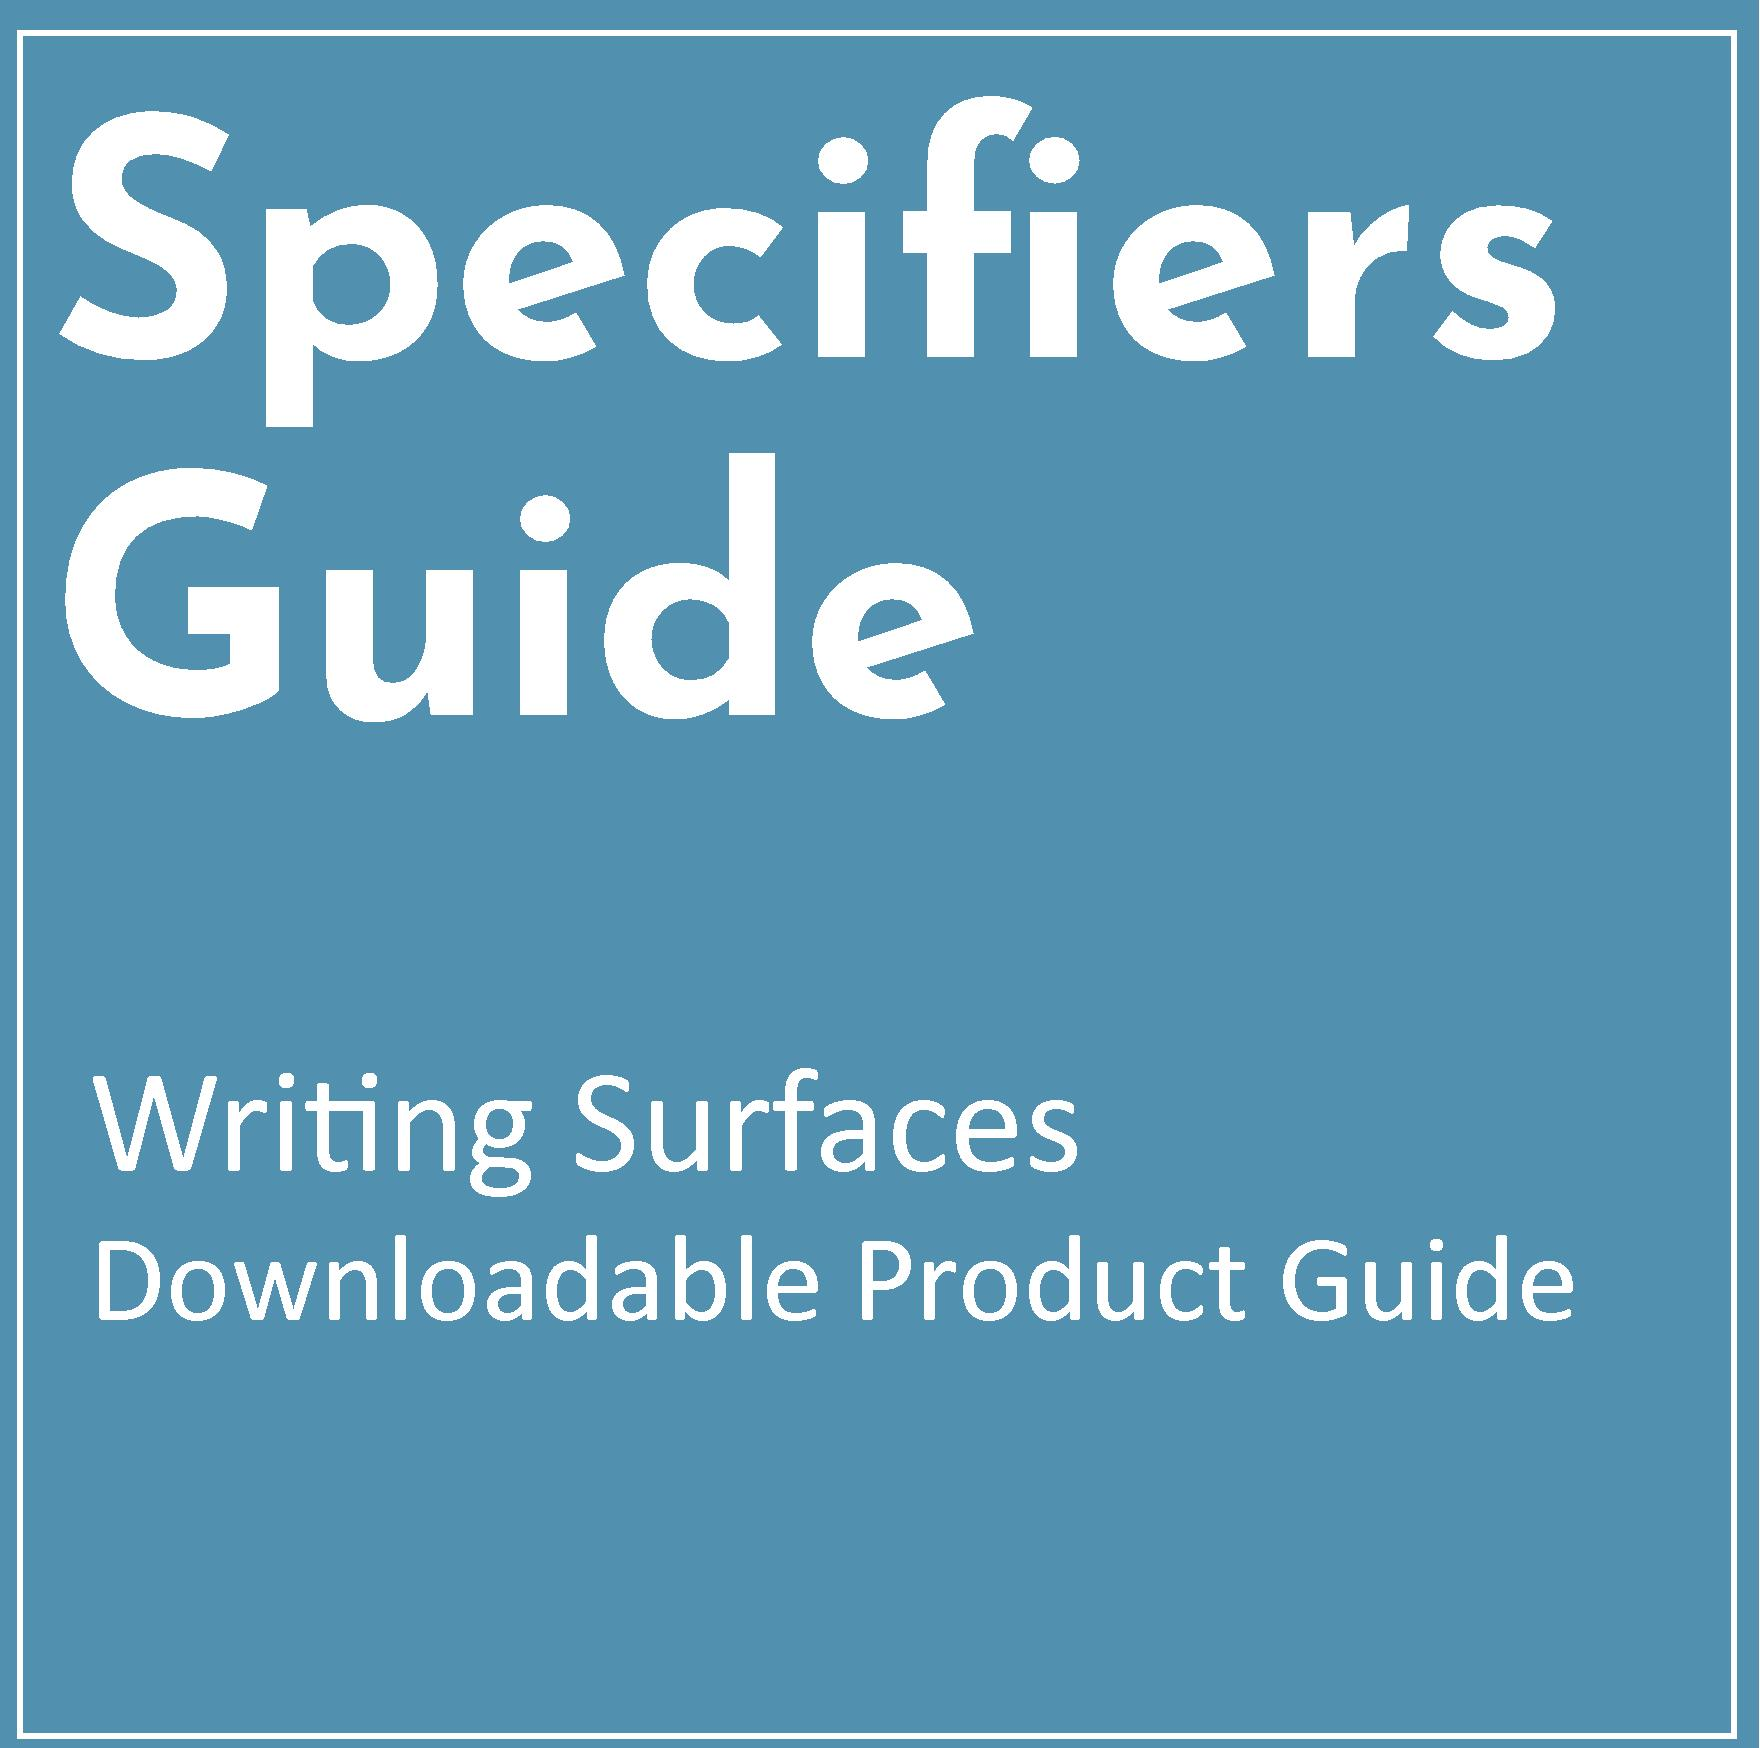 Specifiers Guide for Writing Surfaces